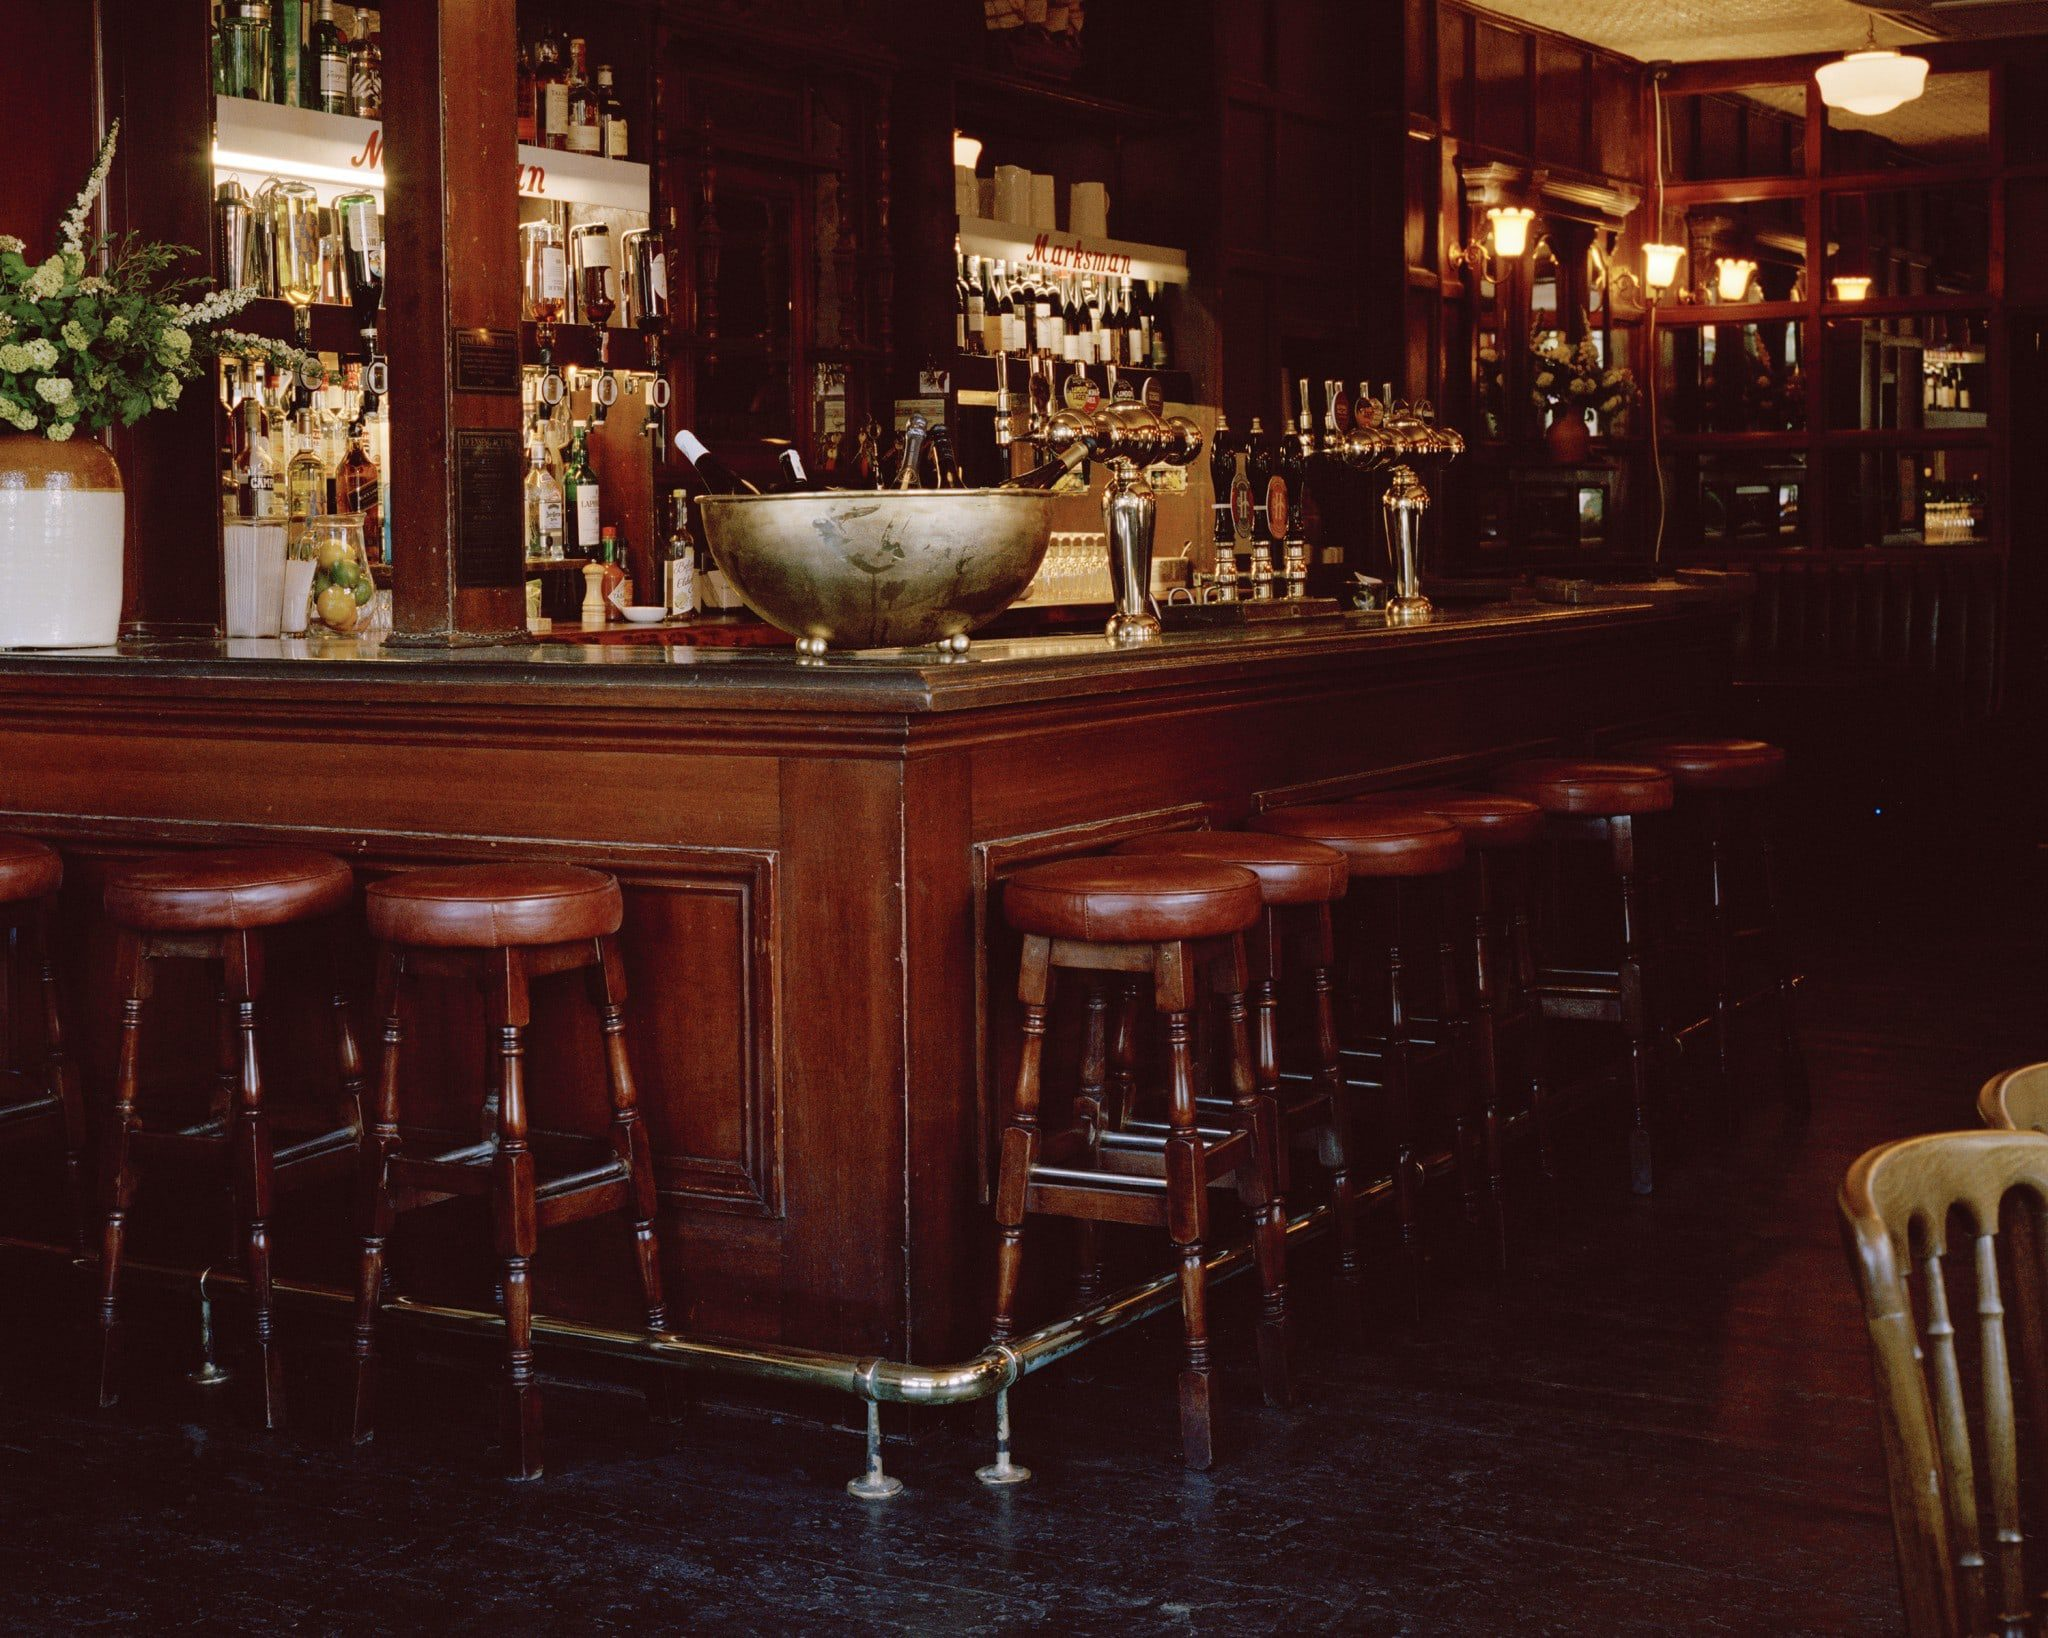 the-bar-of-the-marksman-pub-london-winner-of-michelin-pub-of-the-year-2017